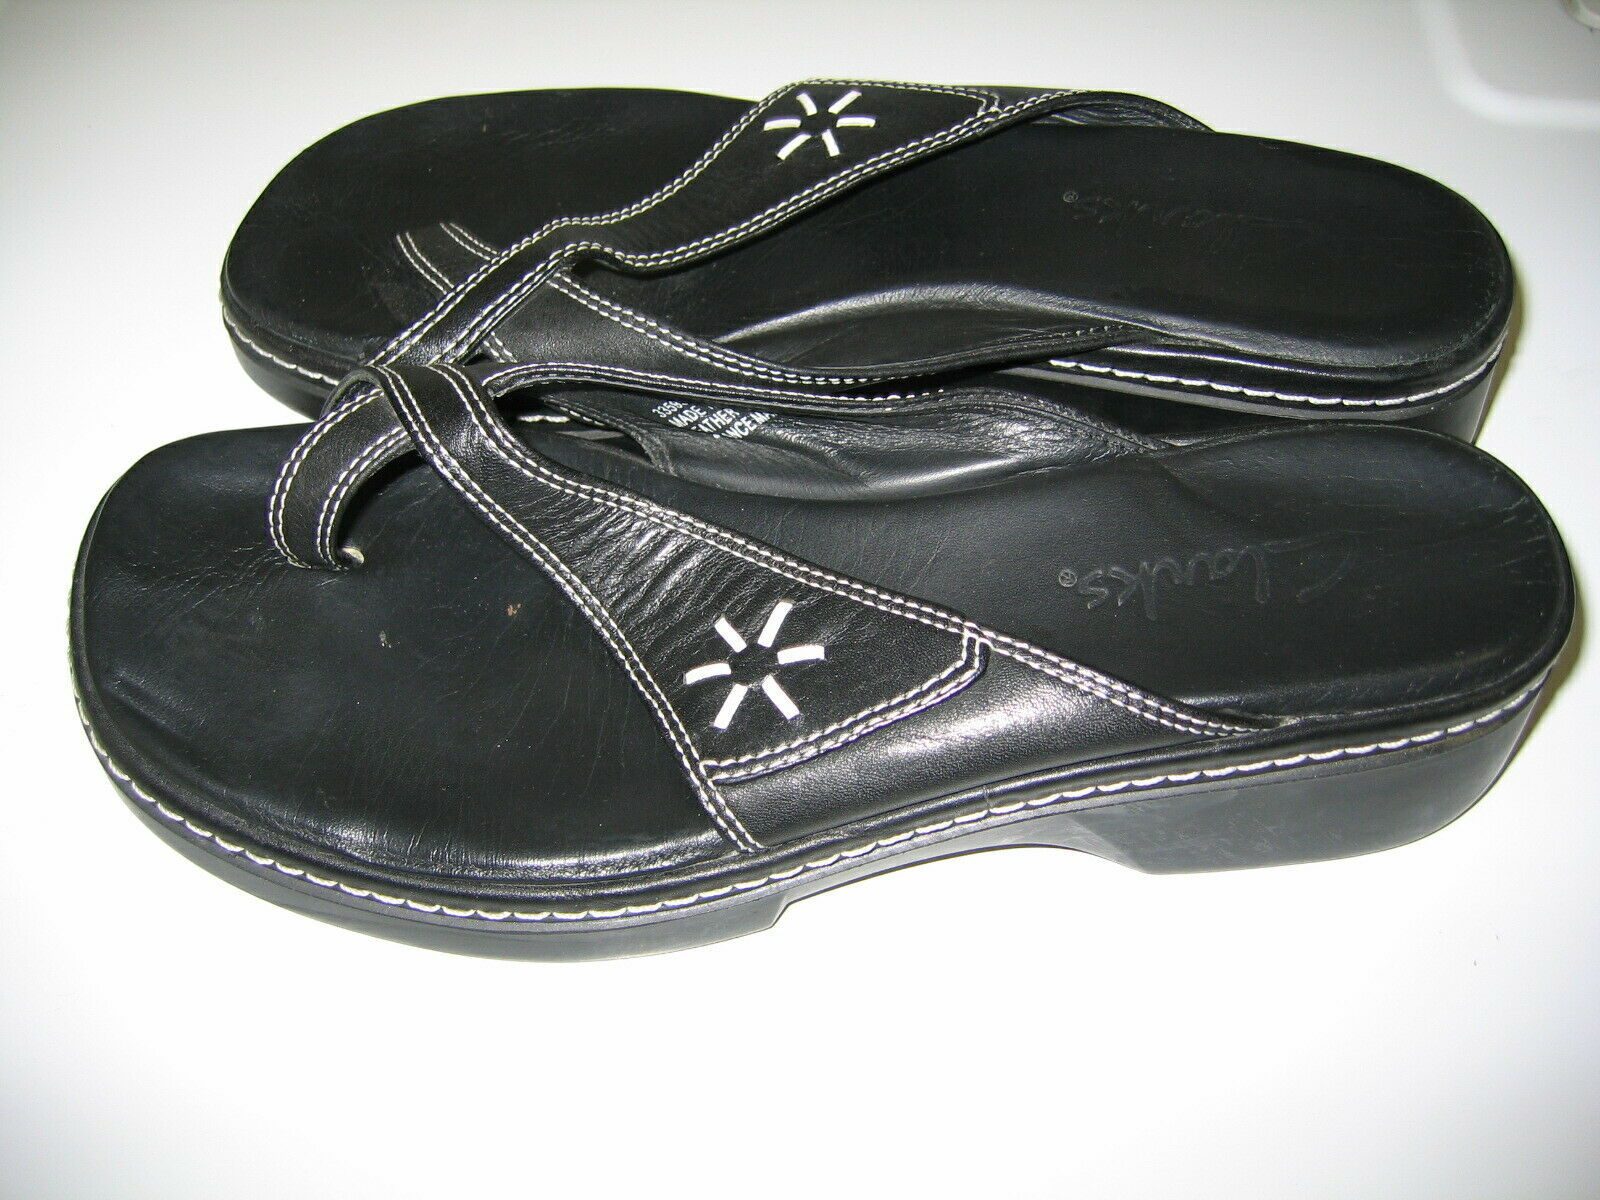 Clarks Leather SANDALS Black Womens Shoes size 8 image 3